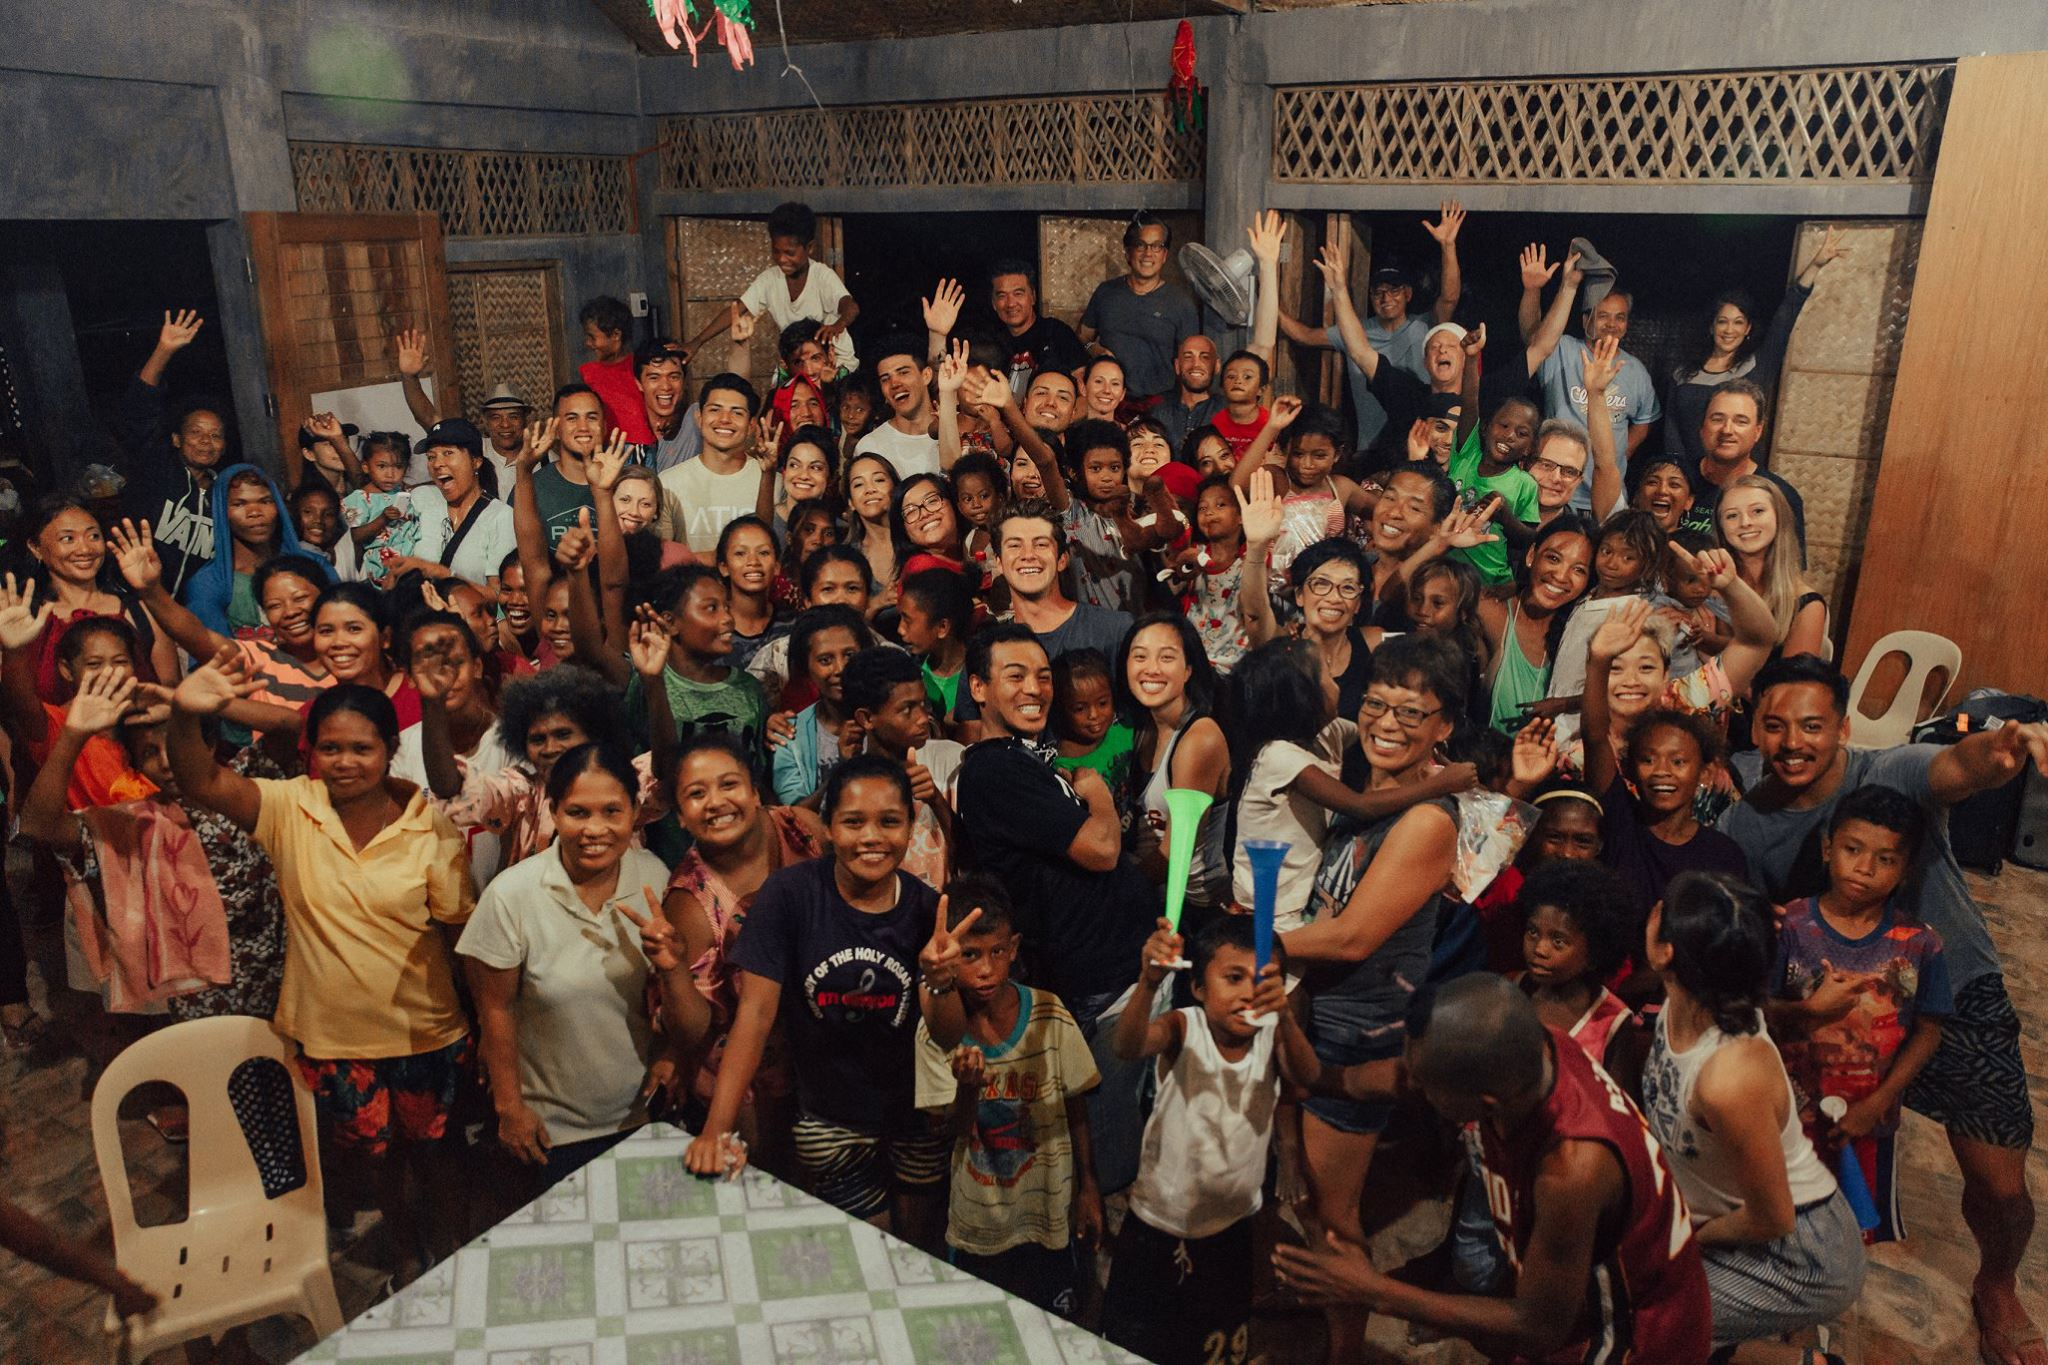 We fed the Ati Village a New Year's Eve dinner - kamay style (eating with your hands)